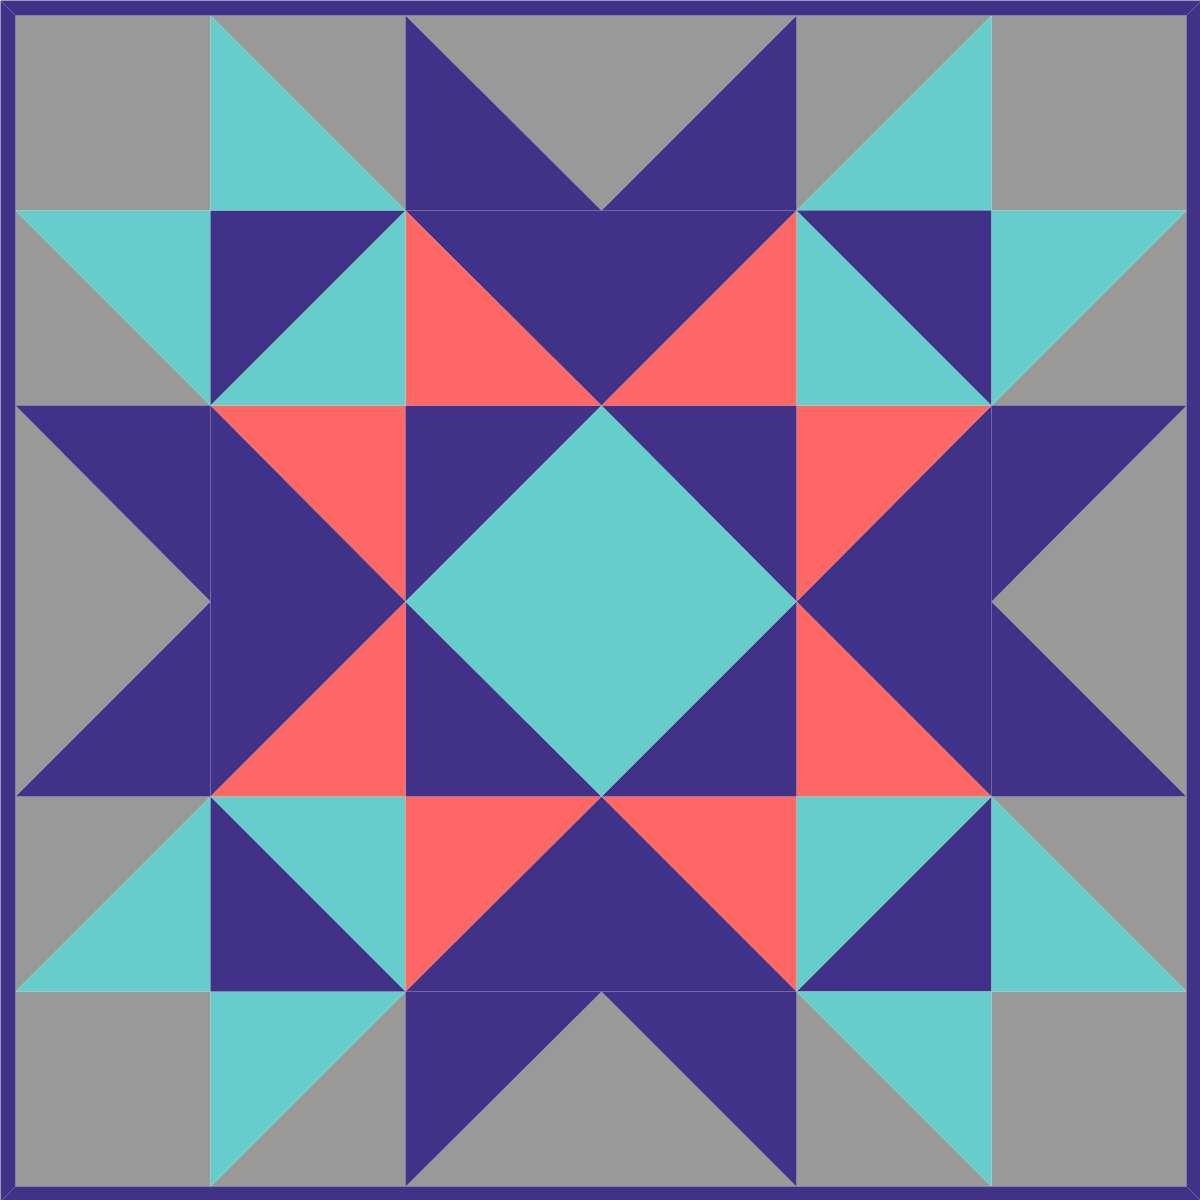 Free Printable Barn Quilt Patterns 4 - Voaac.co.uk - Free Printable Barn Quilt Patterns